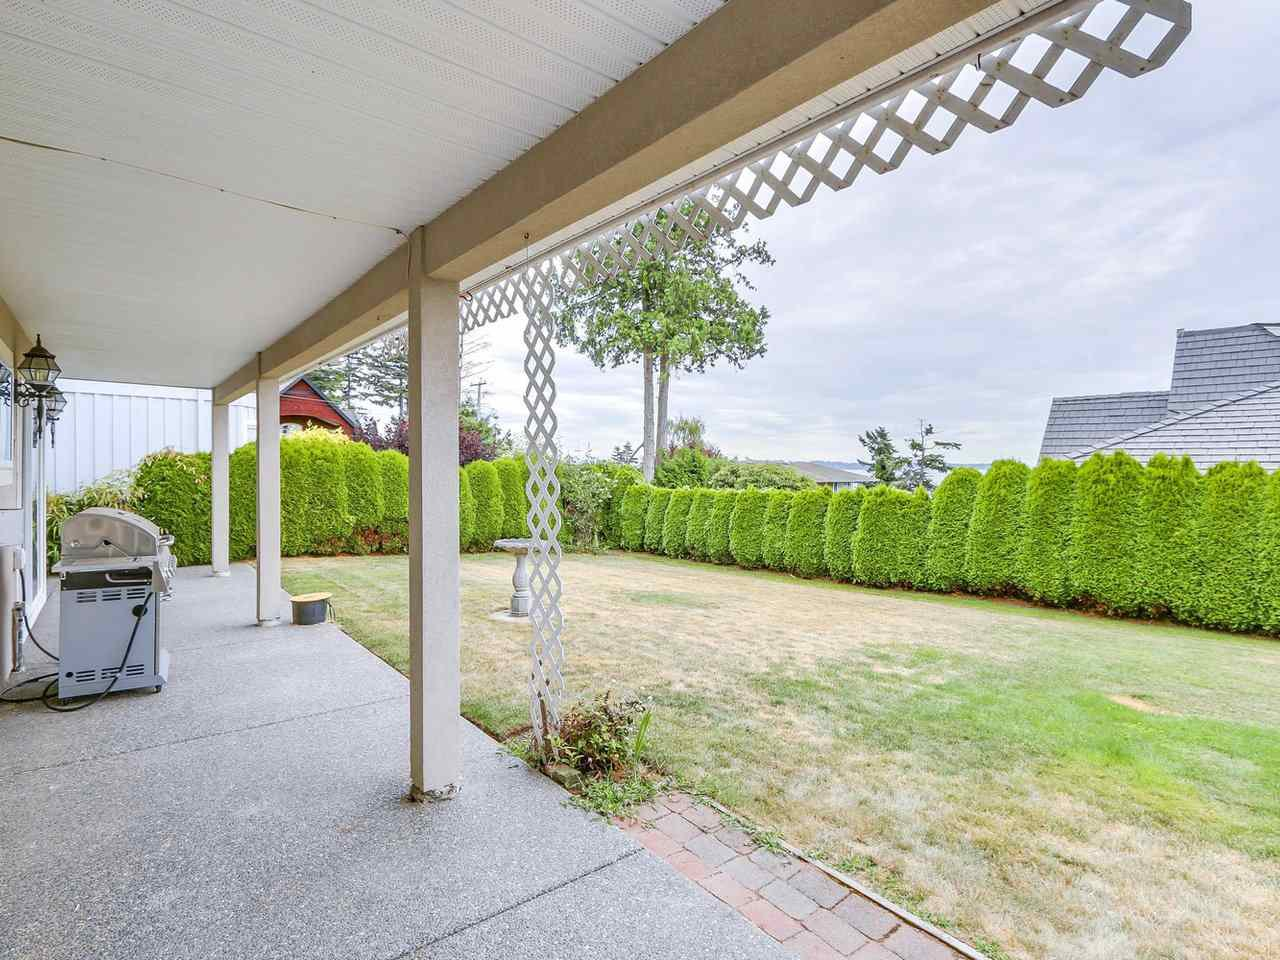 Photo 20: Photos: 1325 132B Street in Surrey: Crescent Bch Ocean Pk. House for sale (South Surrey White Rock)  : MLS®# R2185643